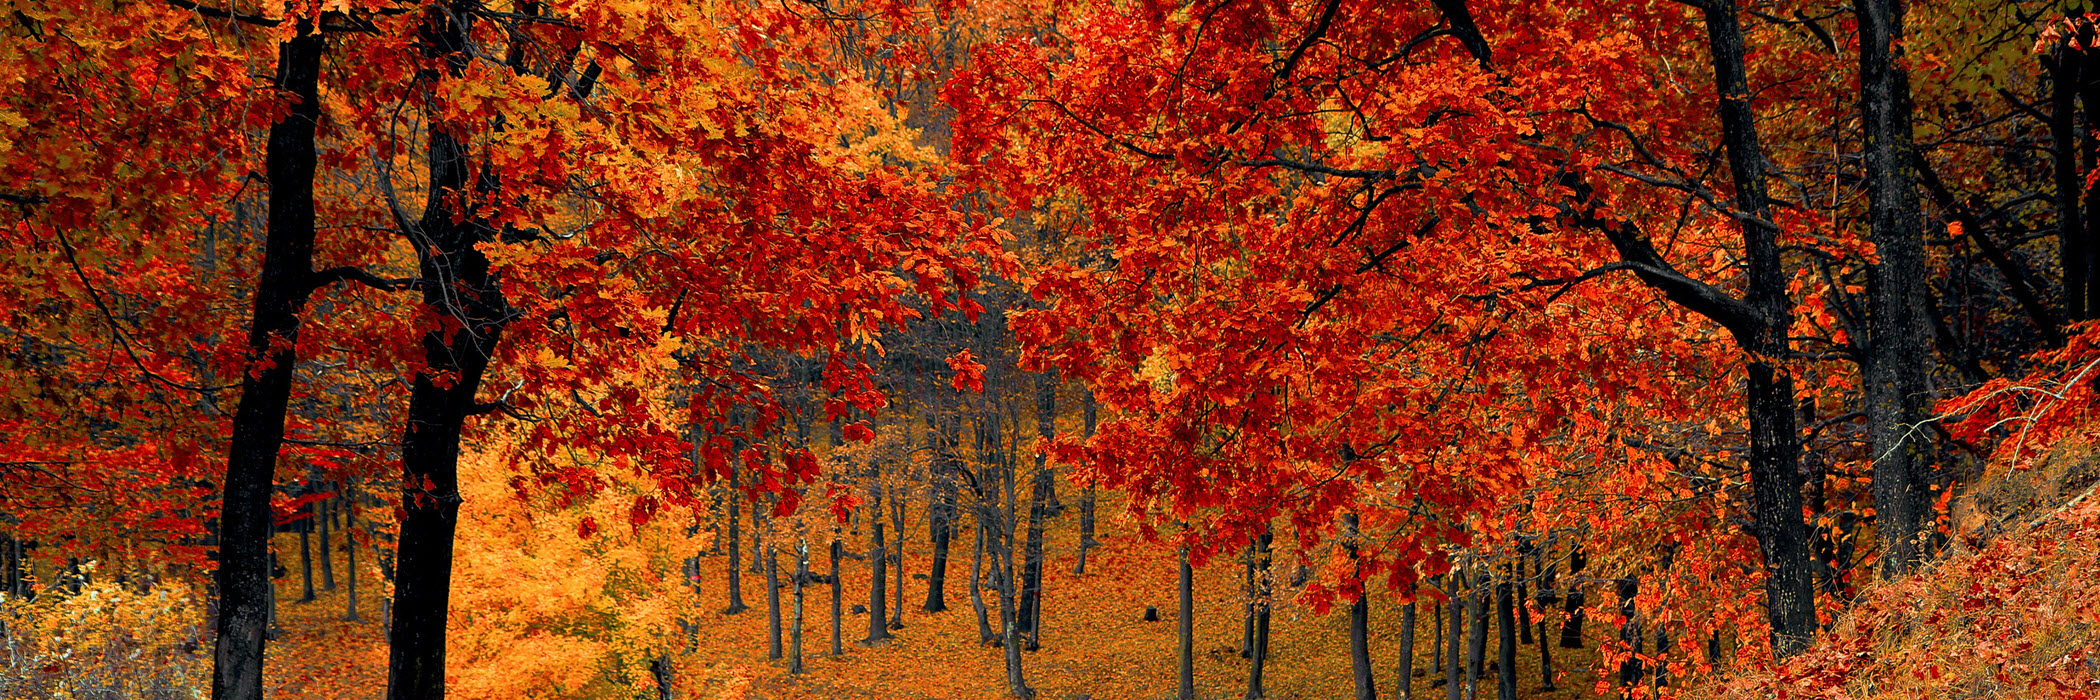 trees-fall-autumn-red-season-b.jpg